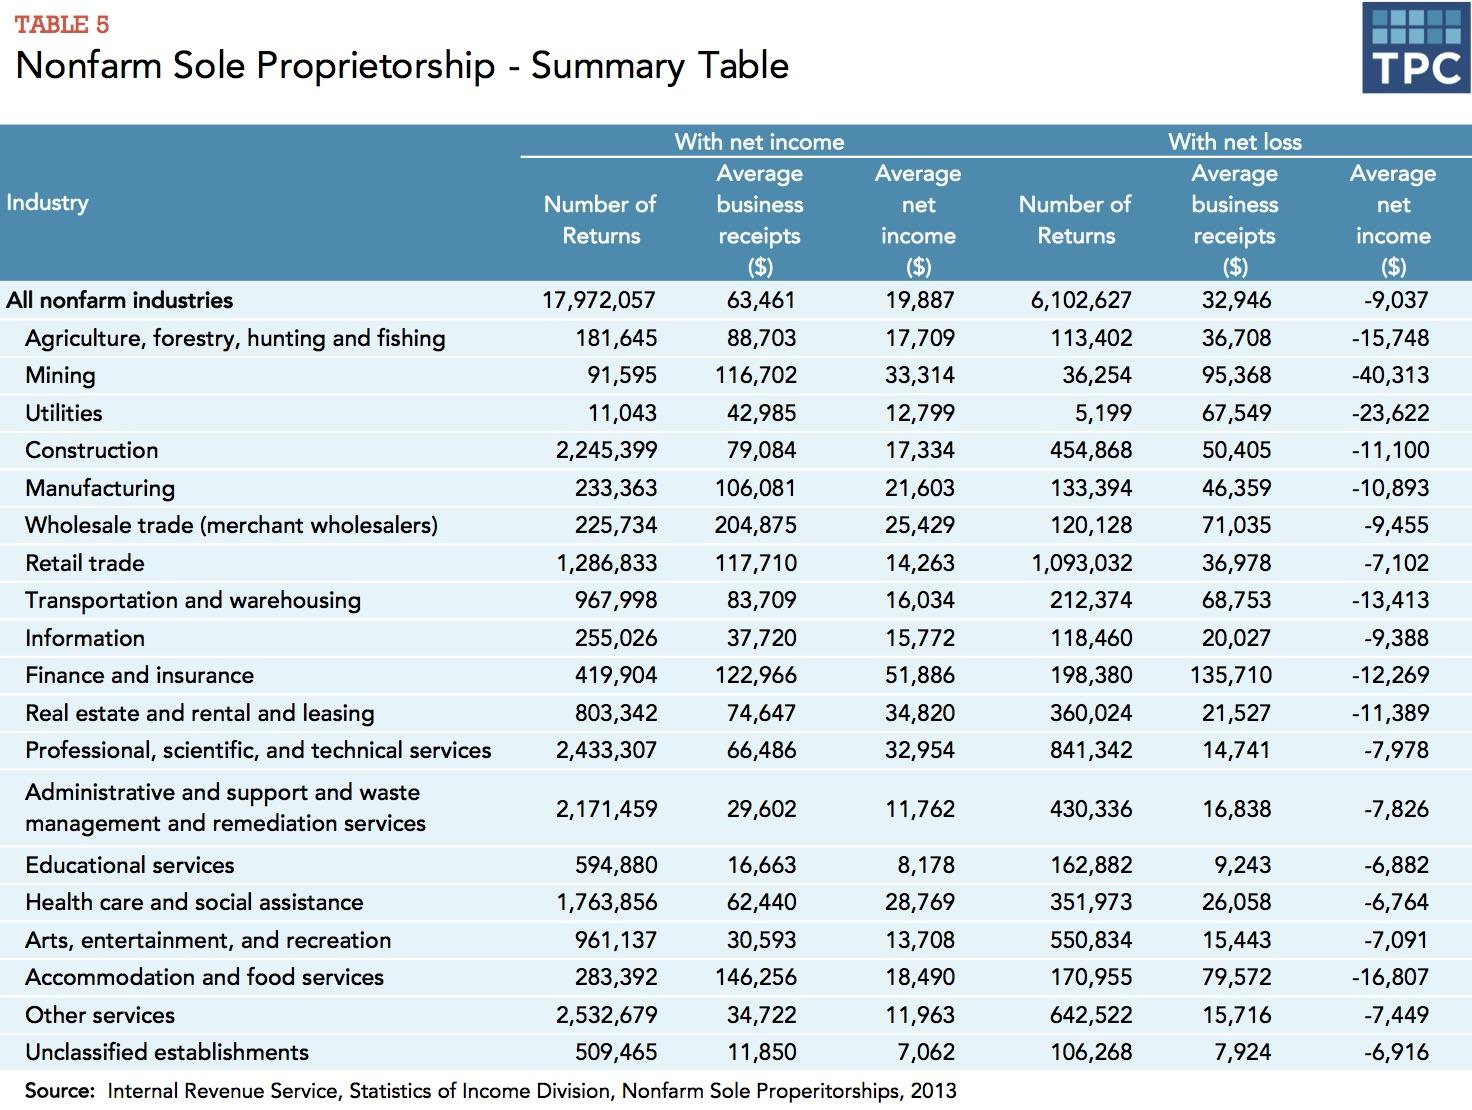 Nonfarm Sole Proprietorship - Summary Table